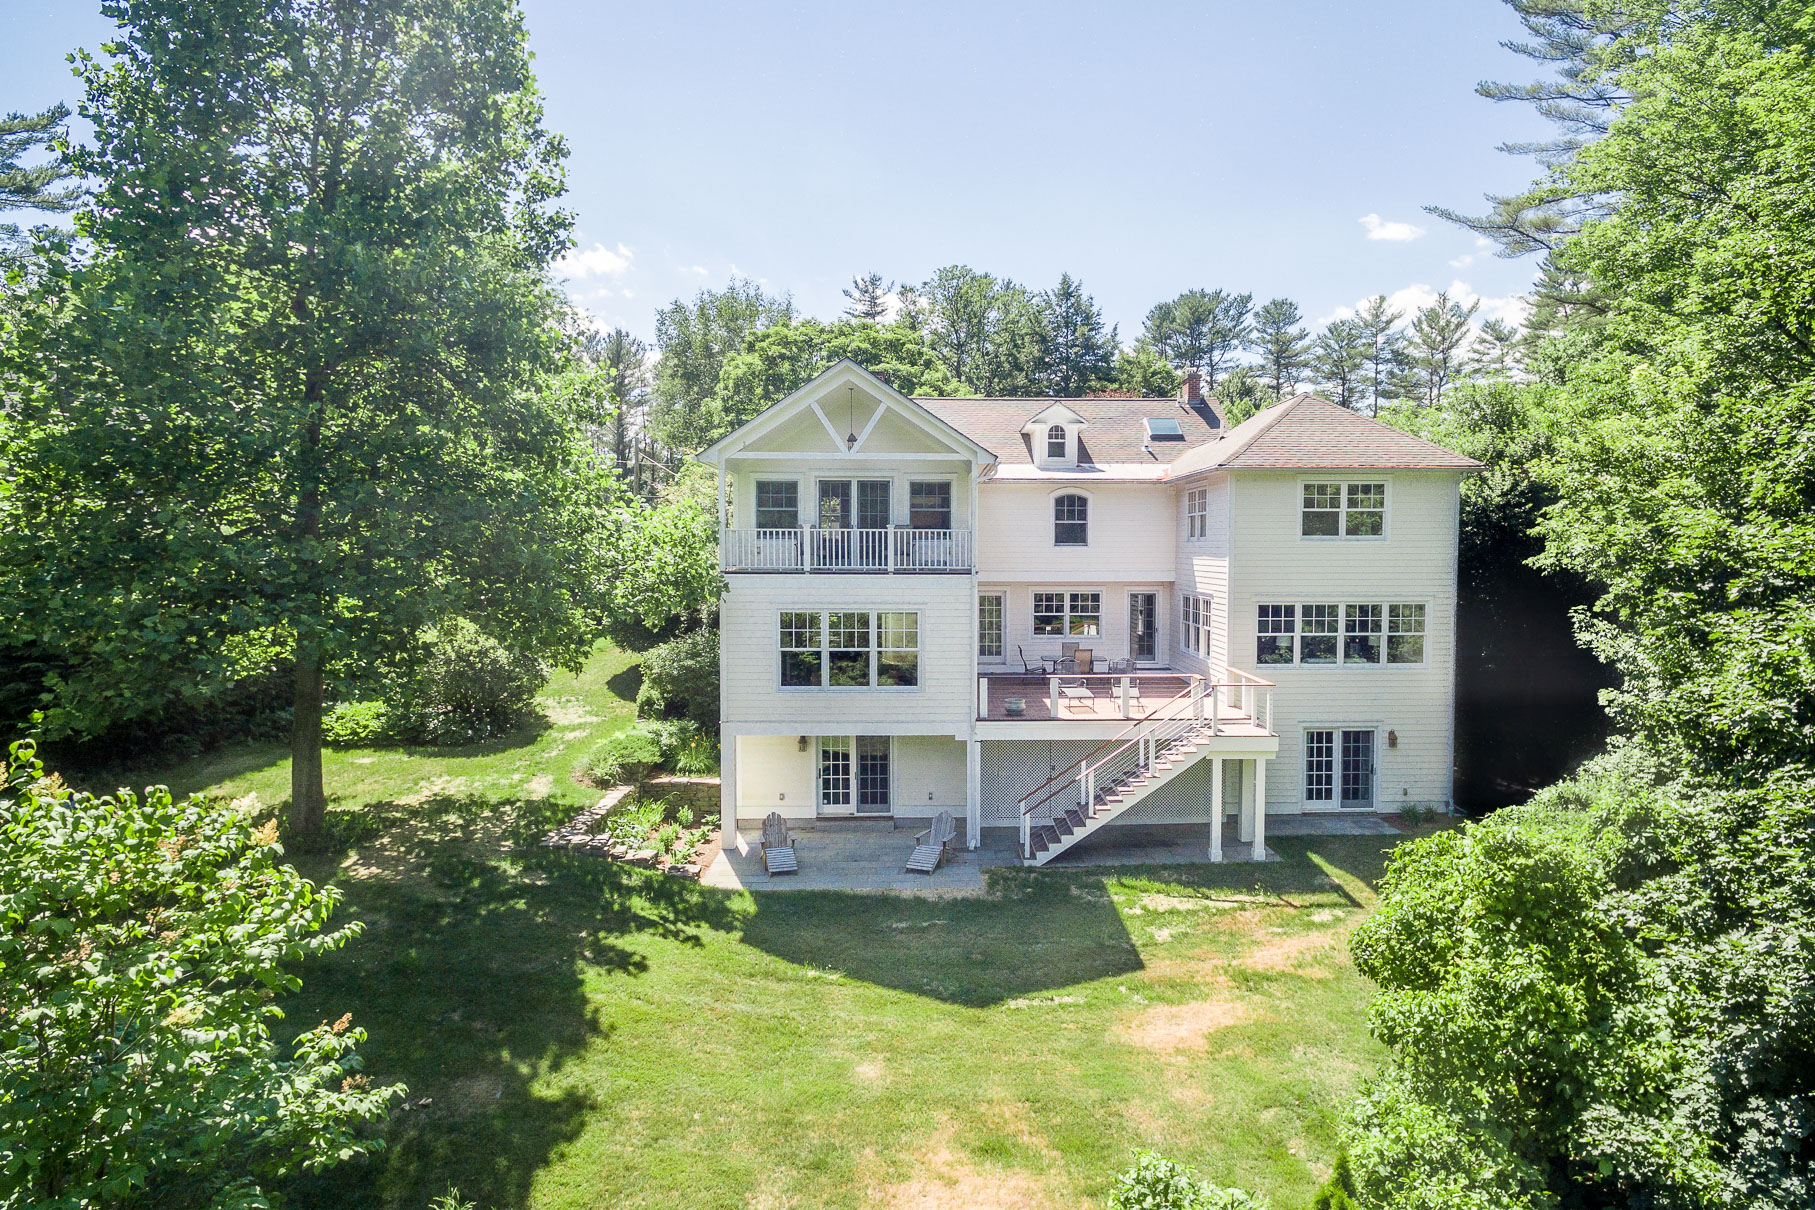 Single Family Home for Sale at 11 Downing Rd, Hanover Hanover, New Hampshire, 03755 United States